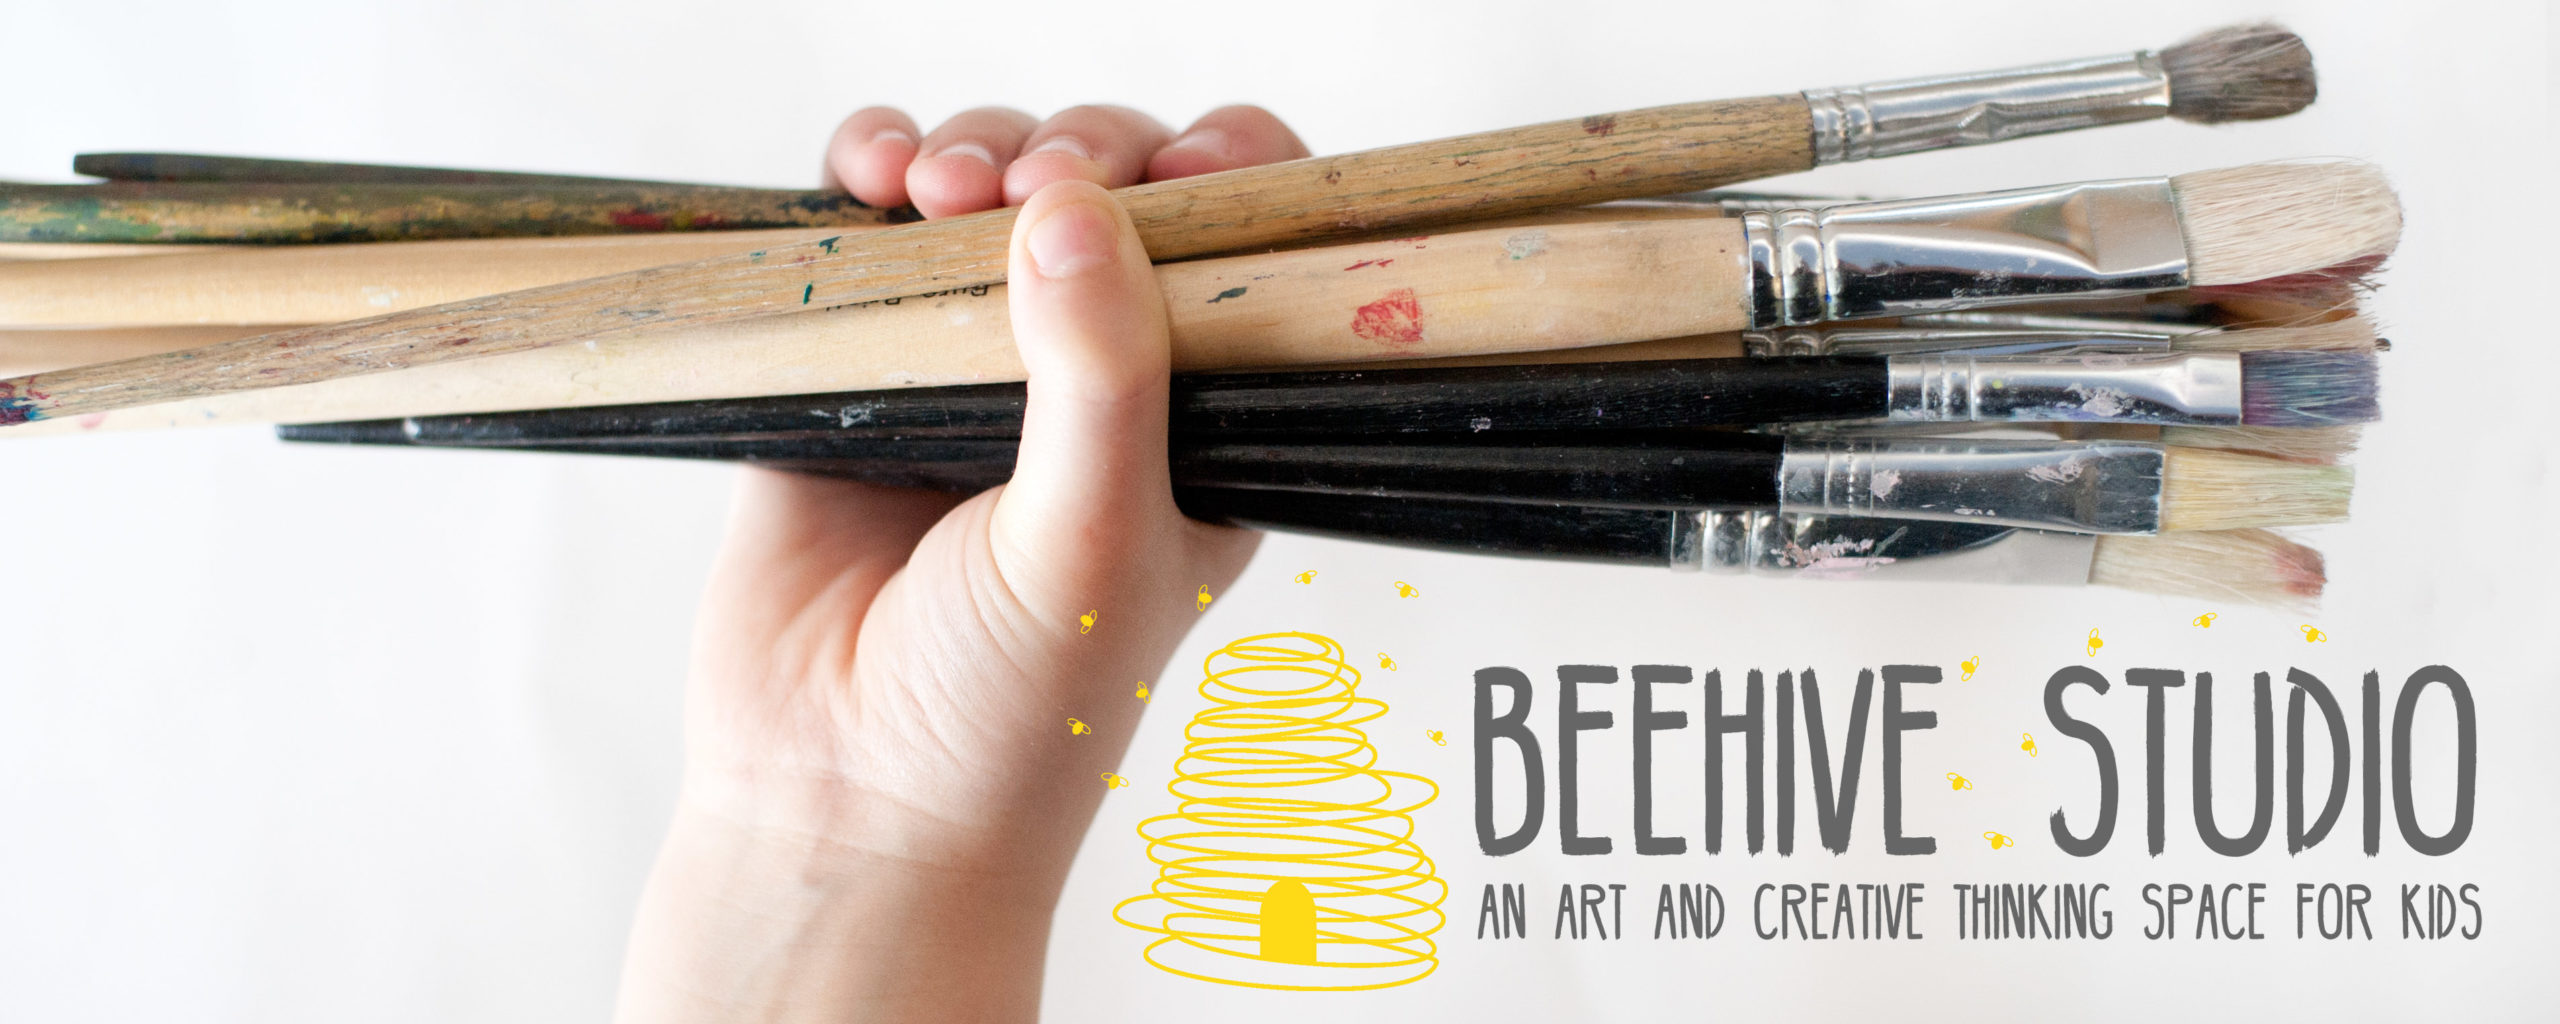 Mini Makers (age 2+ to 5) at Beehive Studio